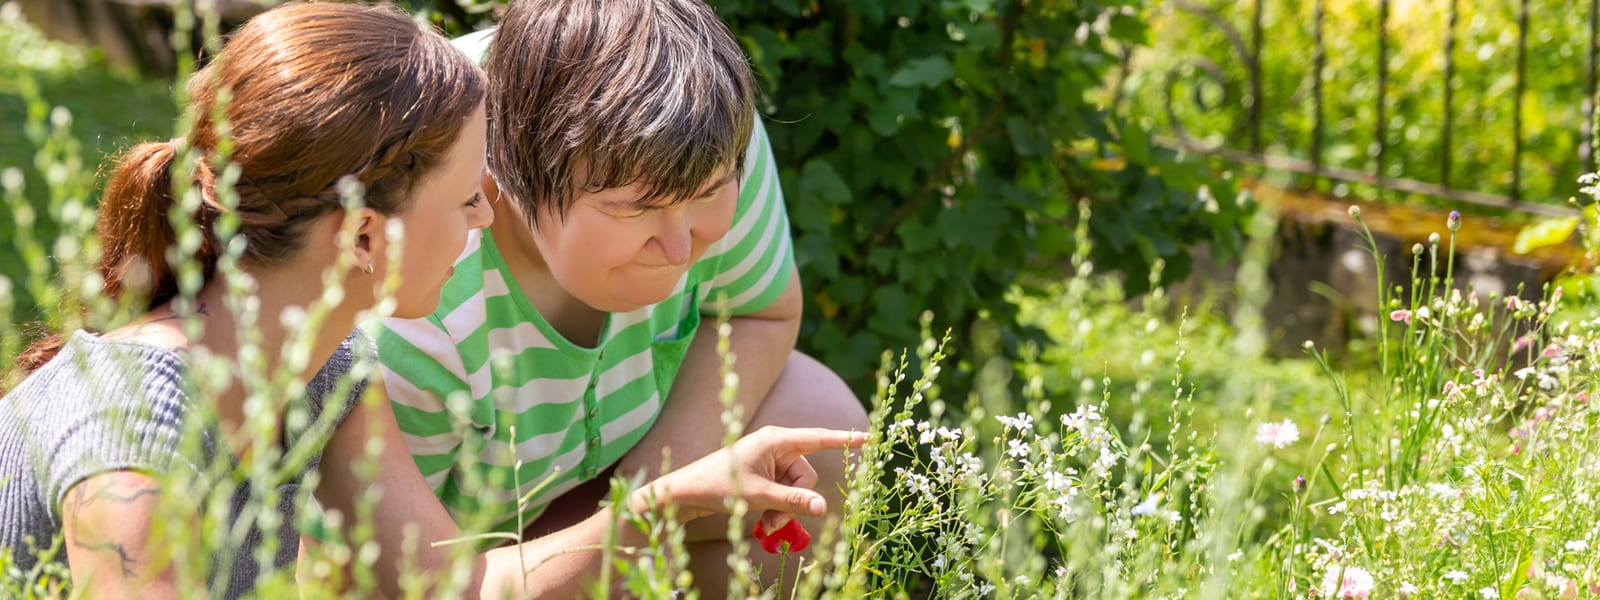 Looking at flowers in the garden